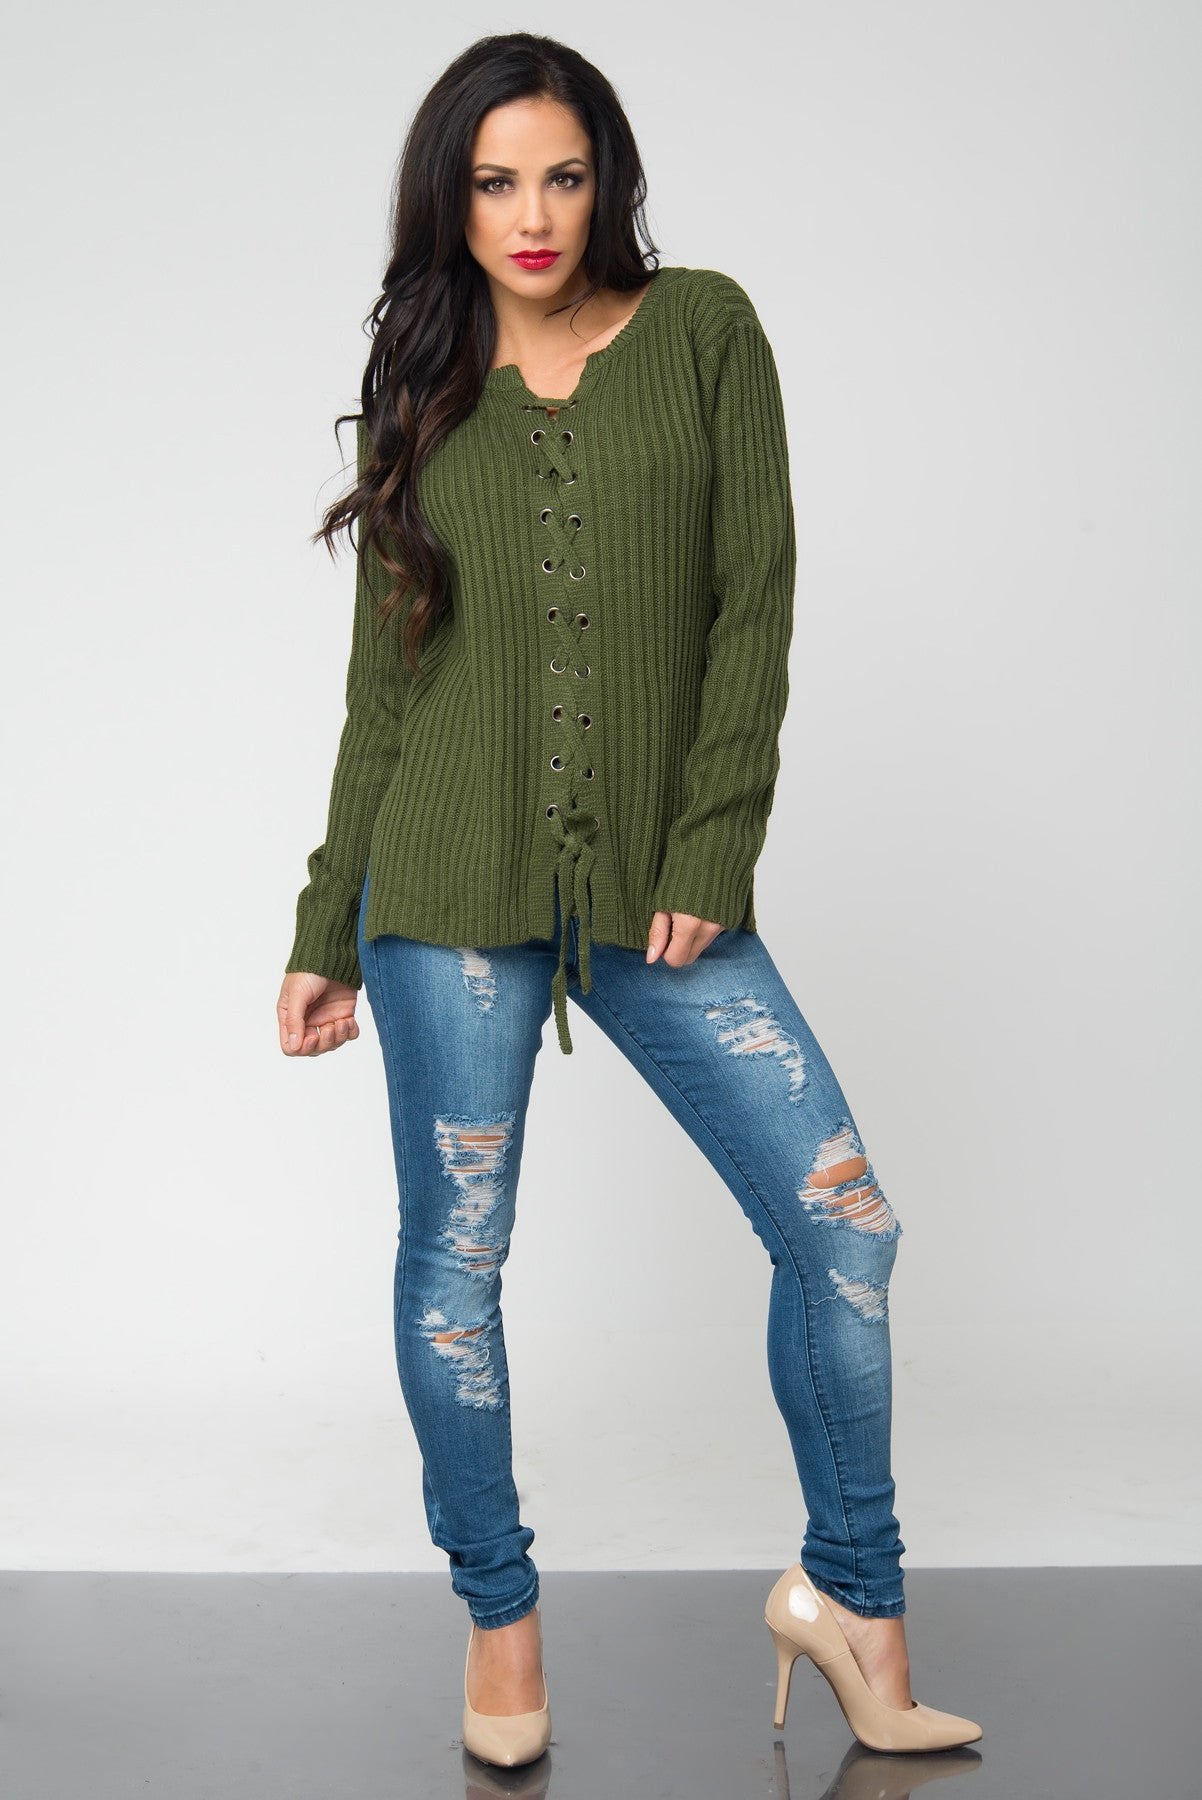 Getting Warm Olive Sweater - Fashion Effect Store  - 3